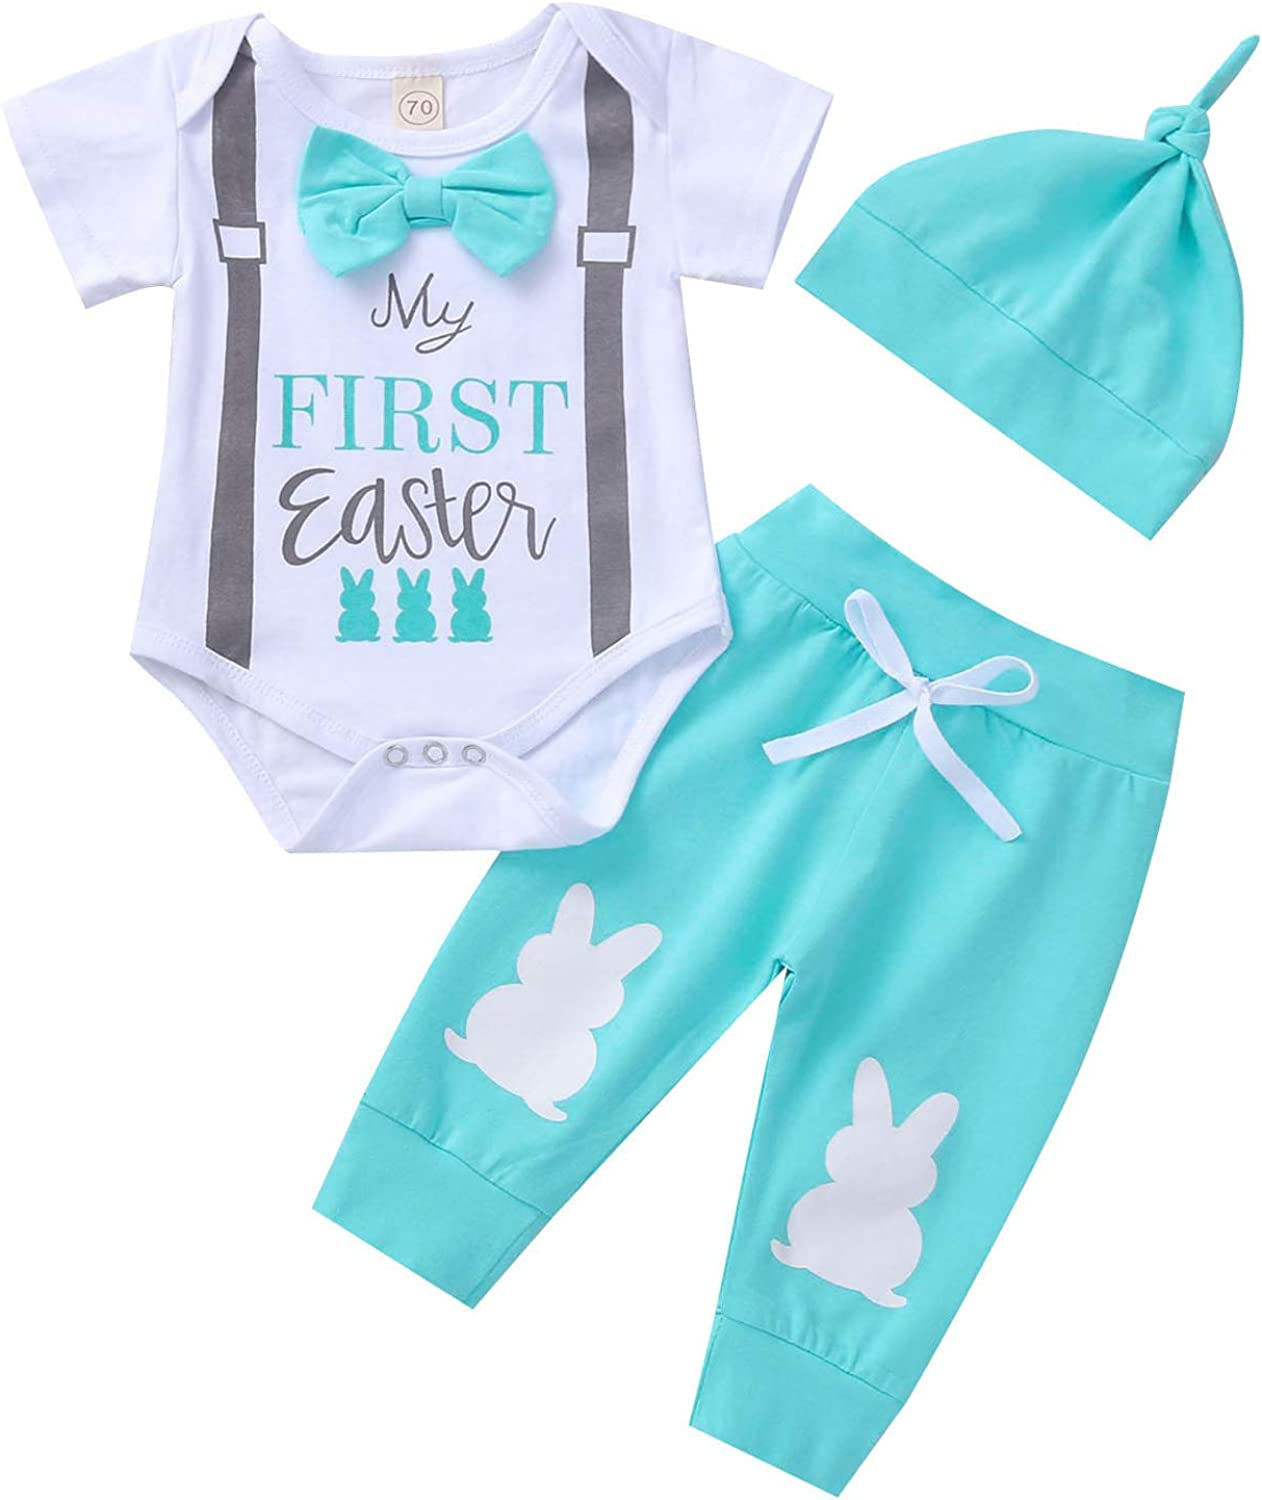 Baby Boy My First Easter Outfits Letter Print Romper+Bunny Pattern Long Pants+Hat 3PCs Clothes Set